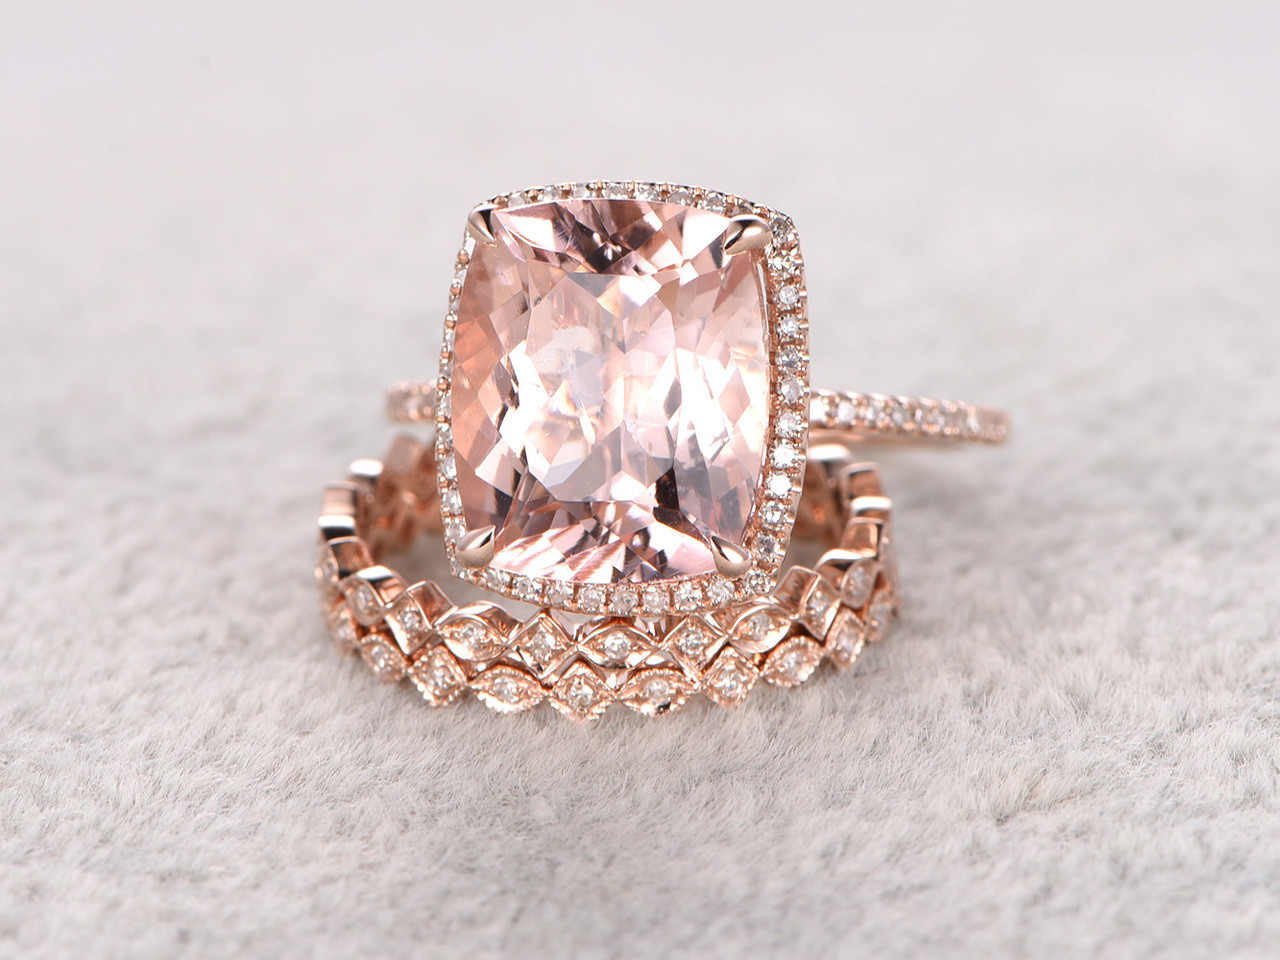 5 Carat Cushion Cut Morganite Wedding Set Diamond Bridal Ring 14k Rose Gold Halo Art Deco Full Eternity Band